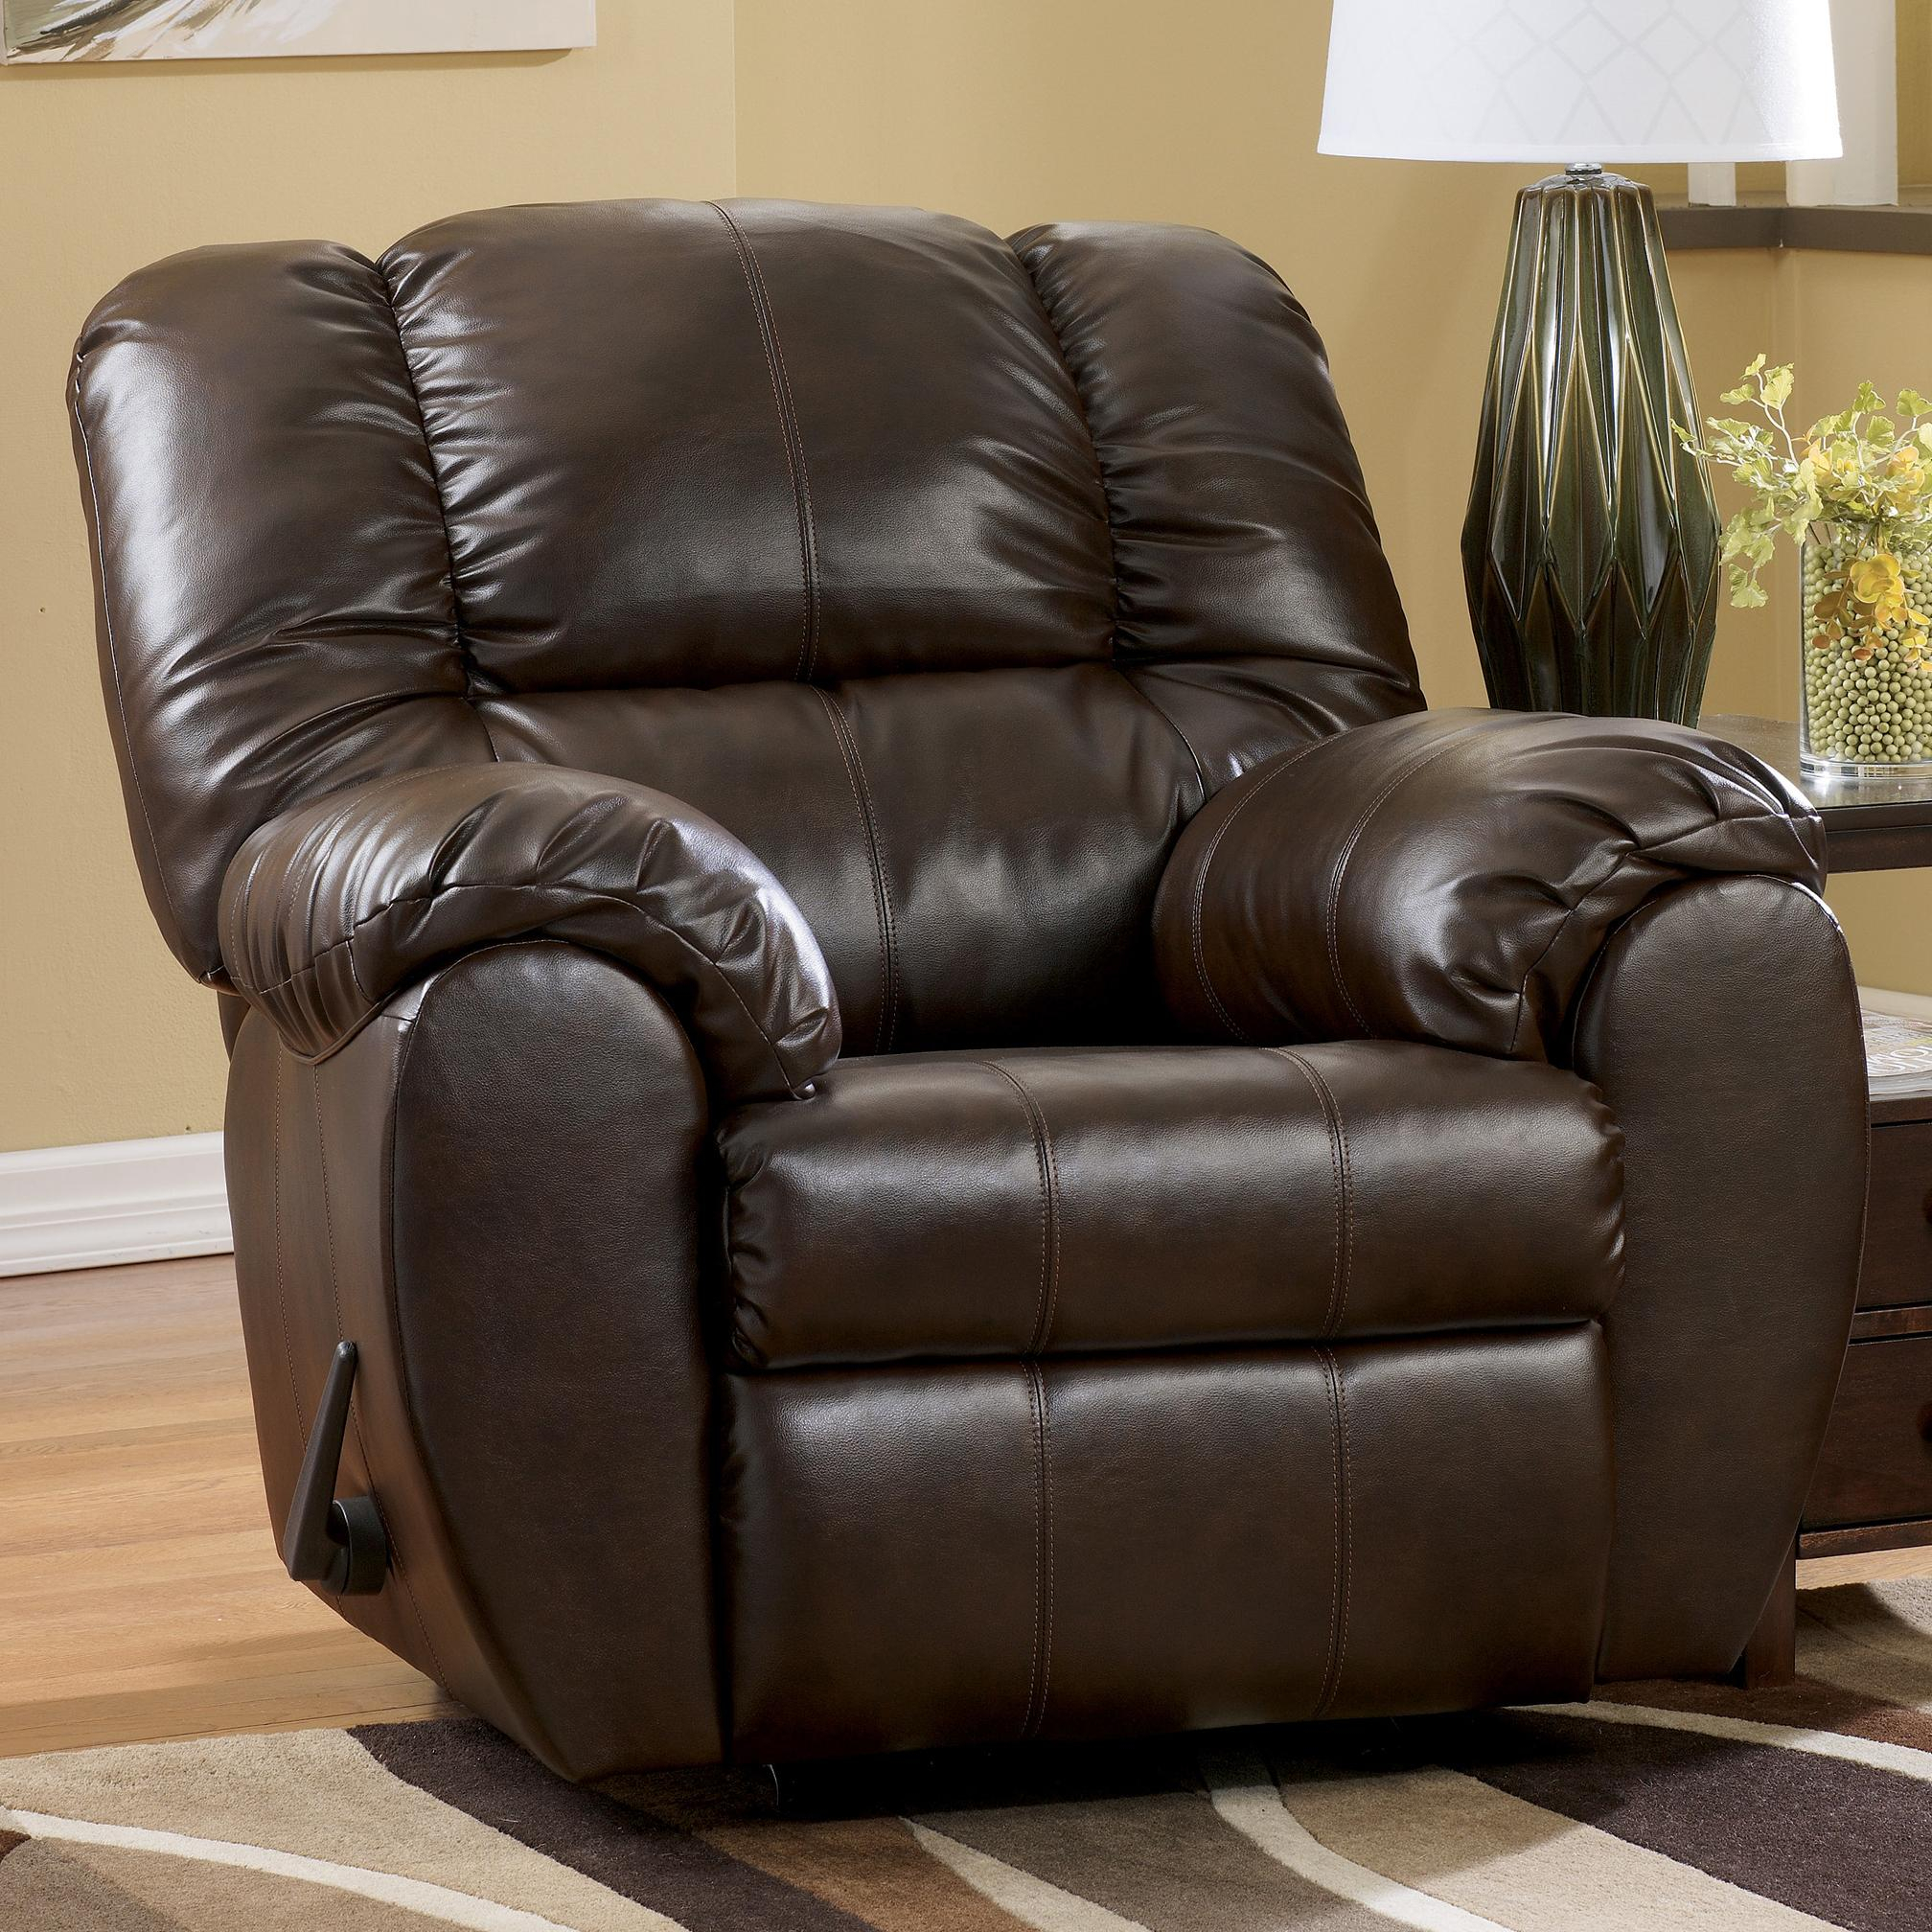 Signature Designashley Dylan Durablend – Espresso Bonded Leather Pertaining To Mansfield Cocoa Leather Sofa Chairs (Image 22 of 25)